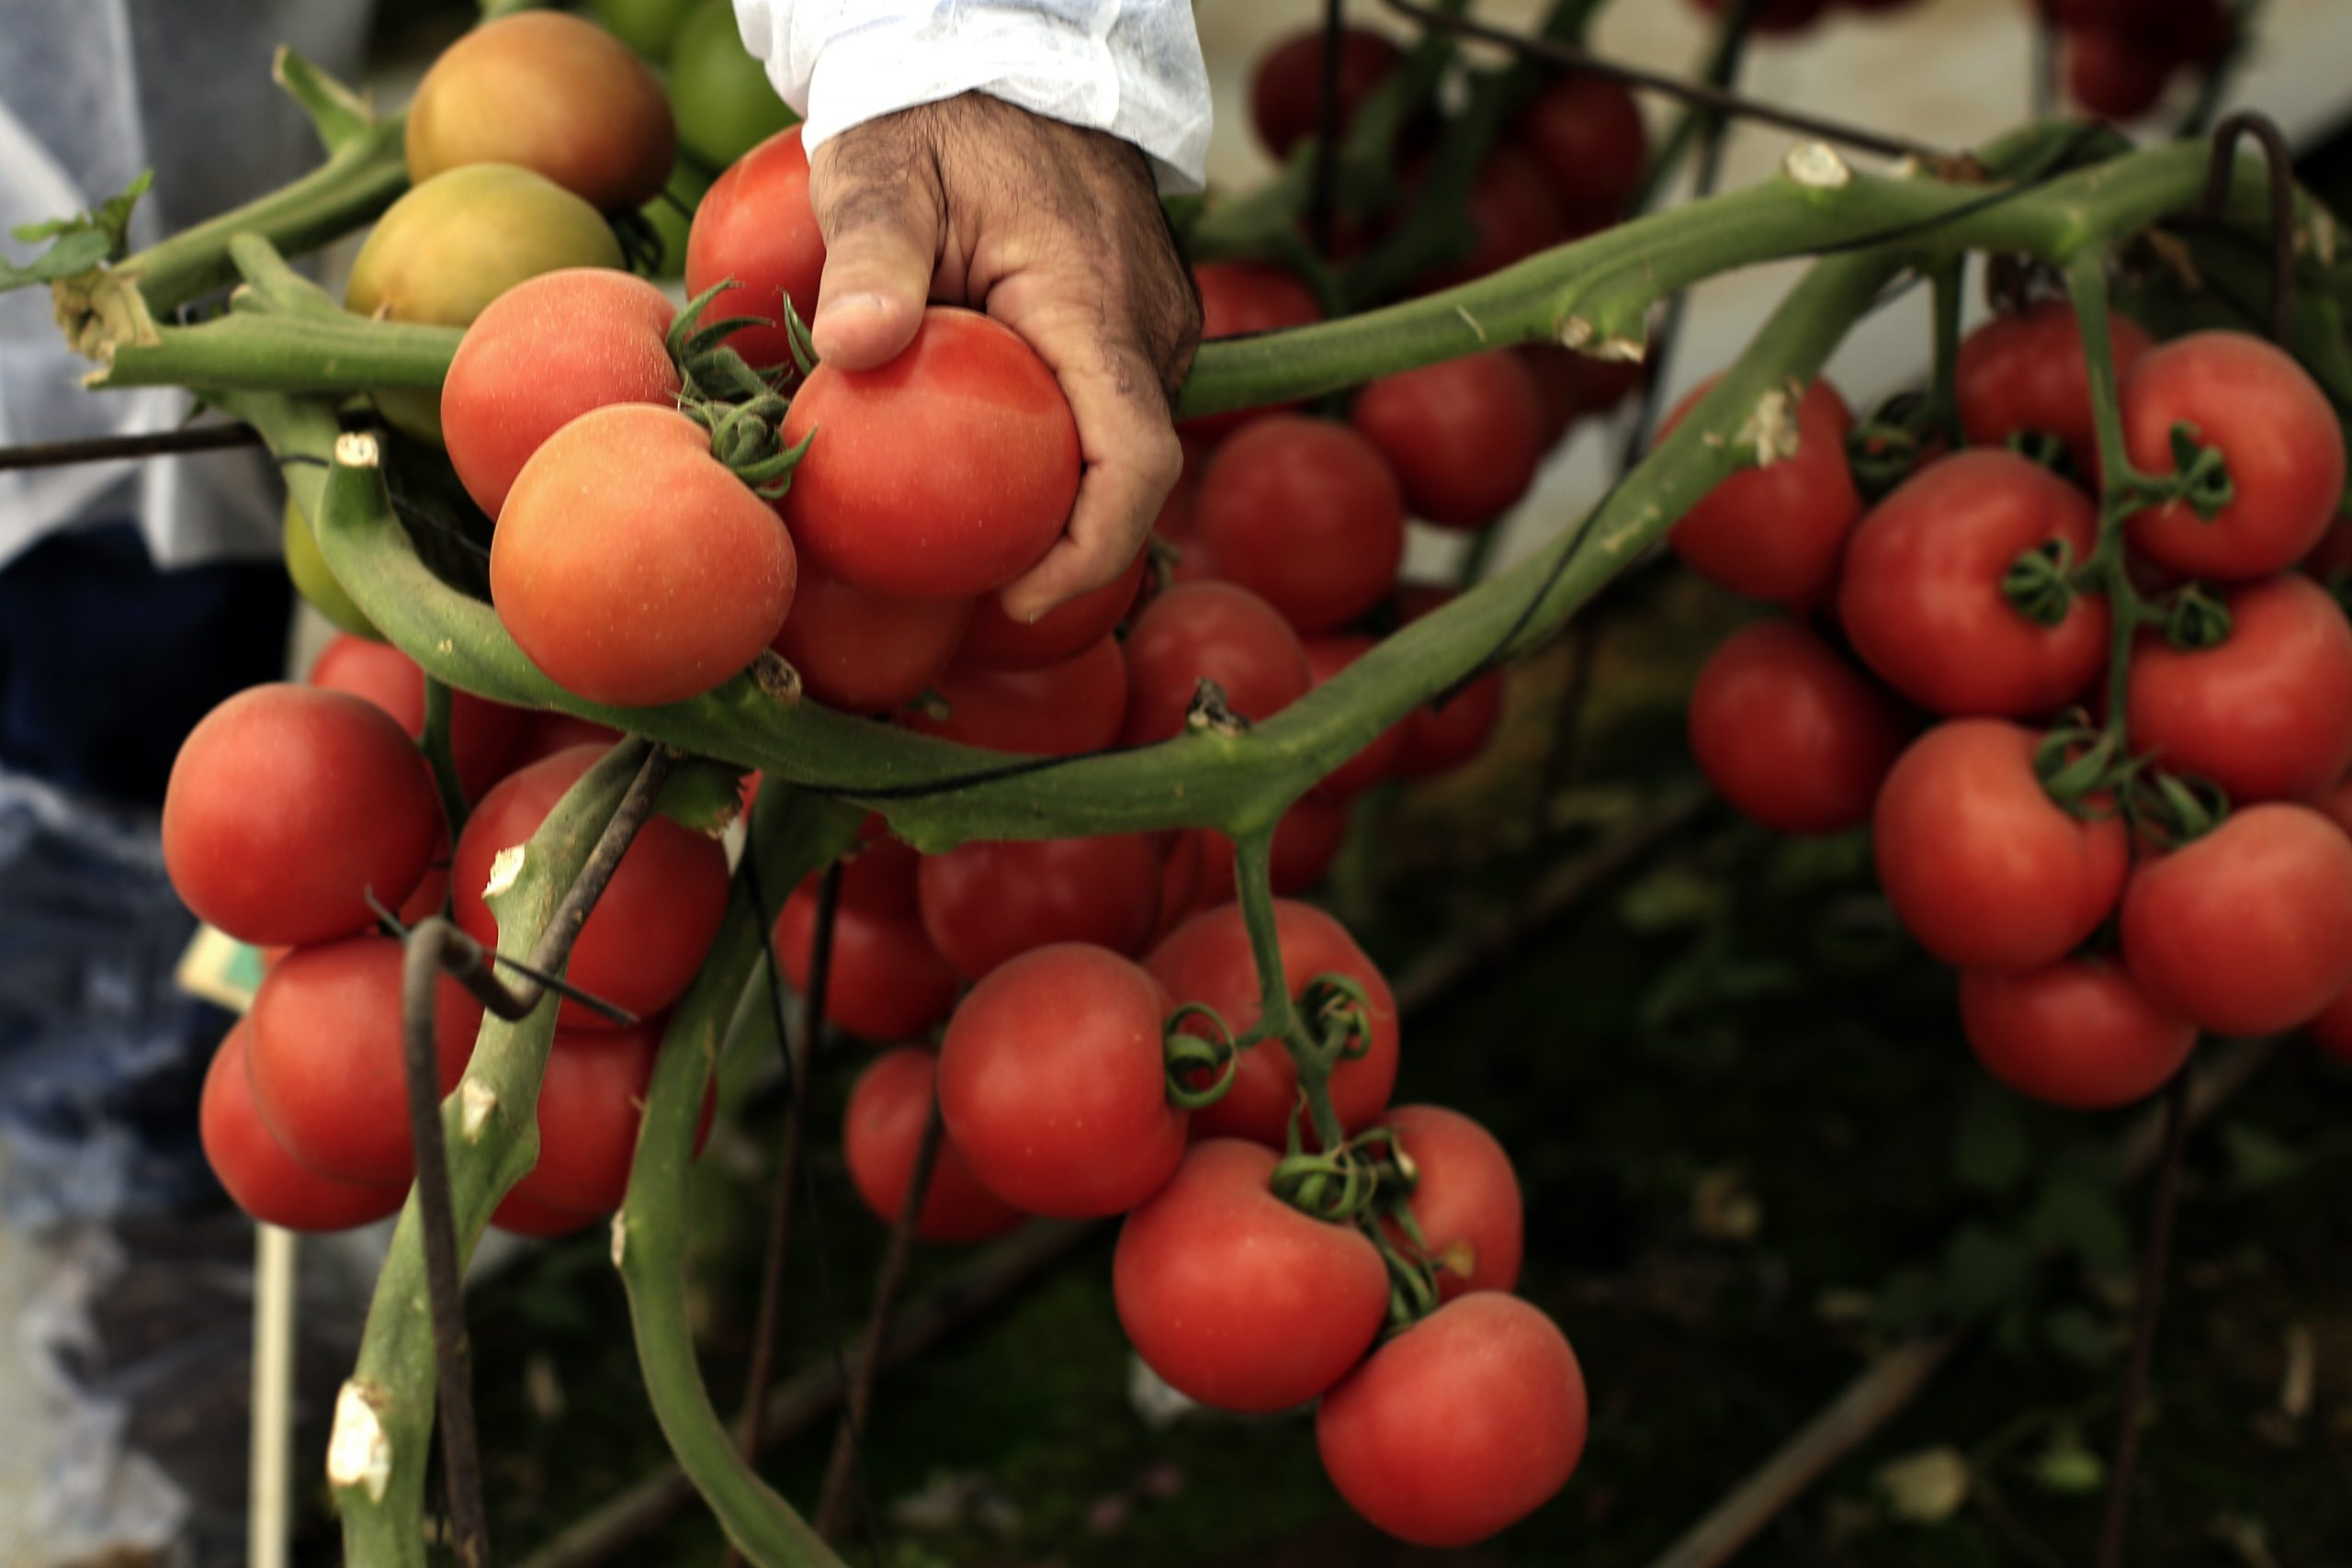 In 2014, 43% of all the volume of tomatoes exported from Turkey went to Russia (336,000 tons).